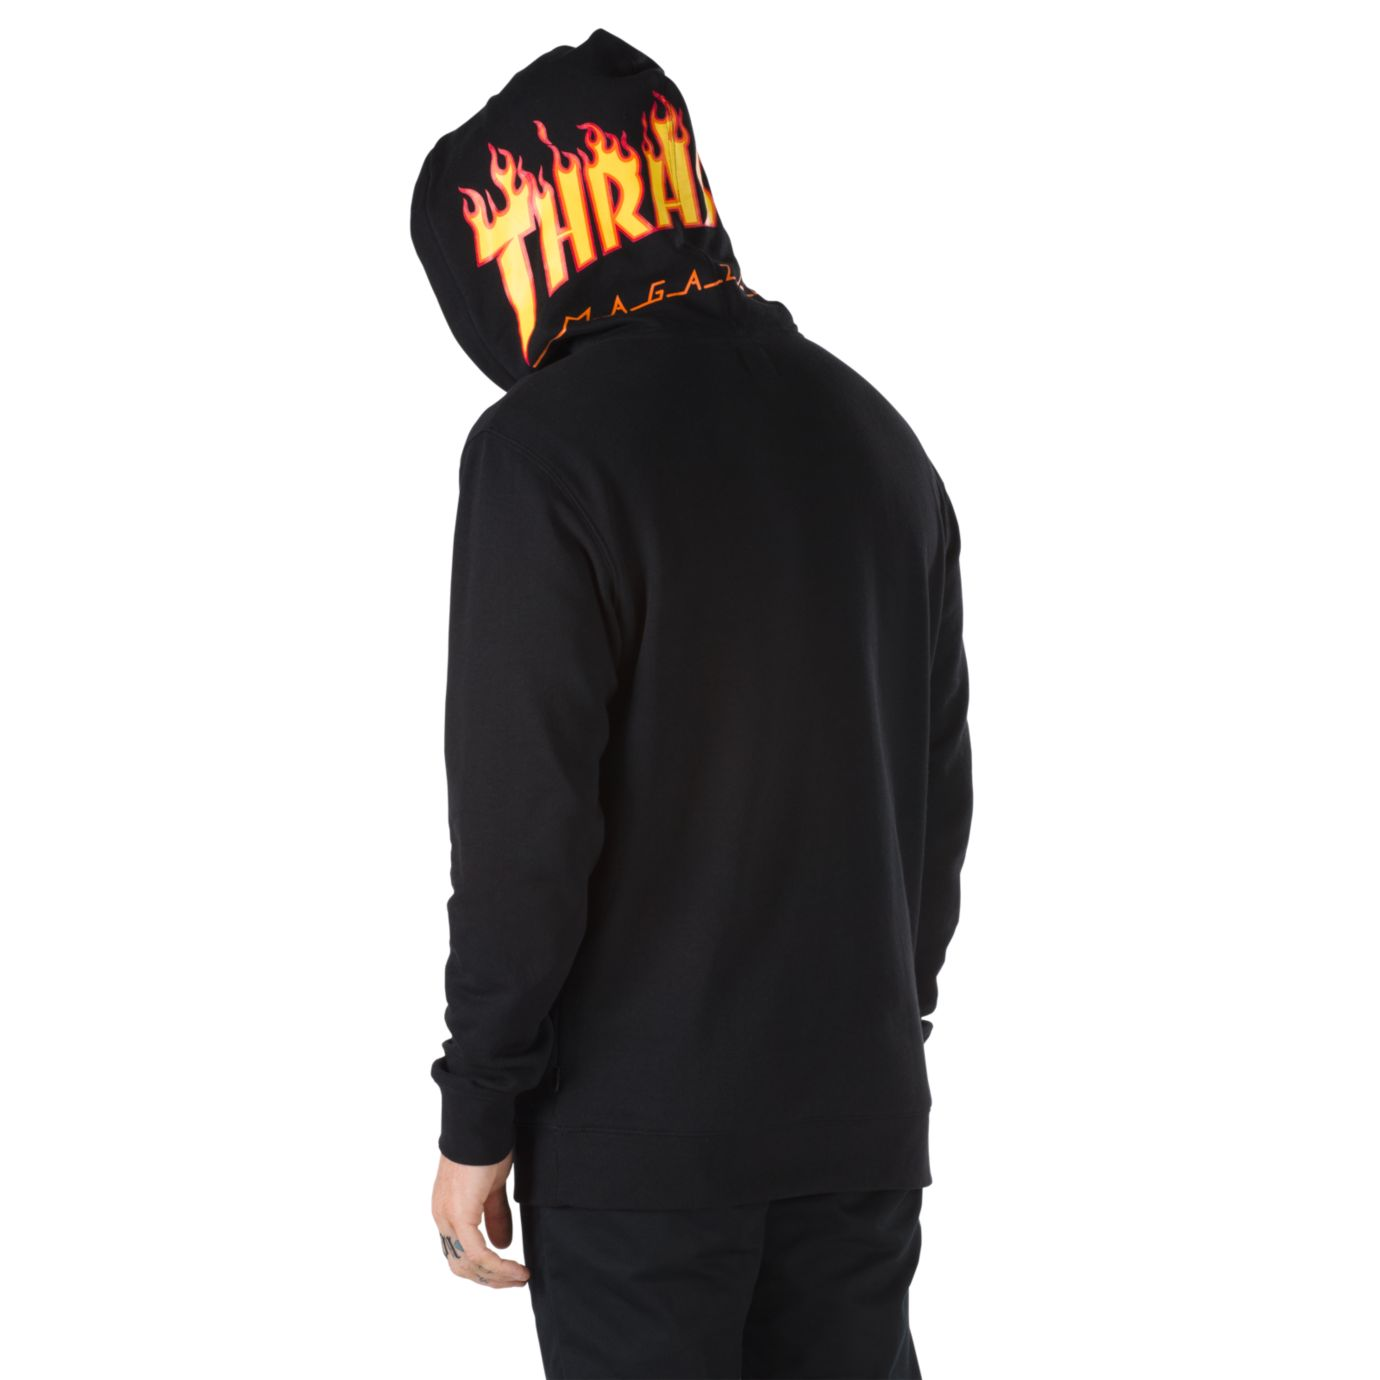 c7328207b2 Vans Commemorates Thrasher Magazine s Iconic Flame Motif